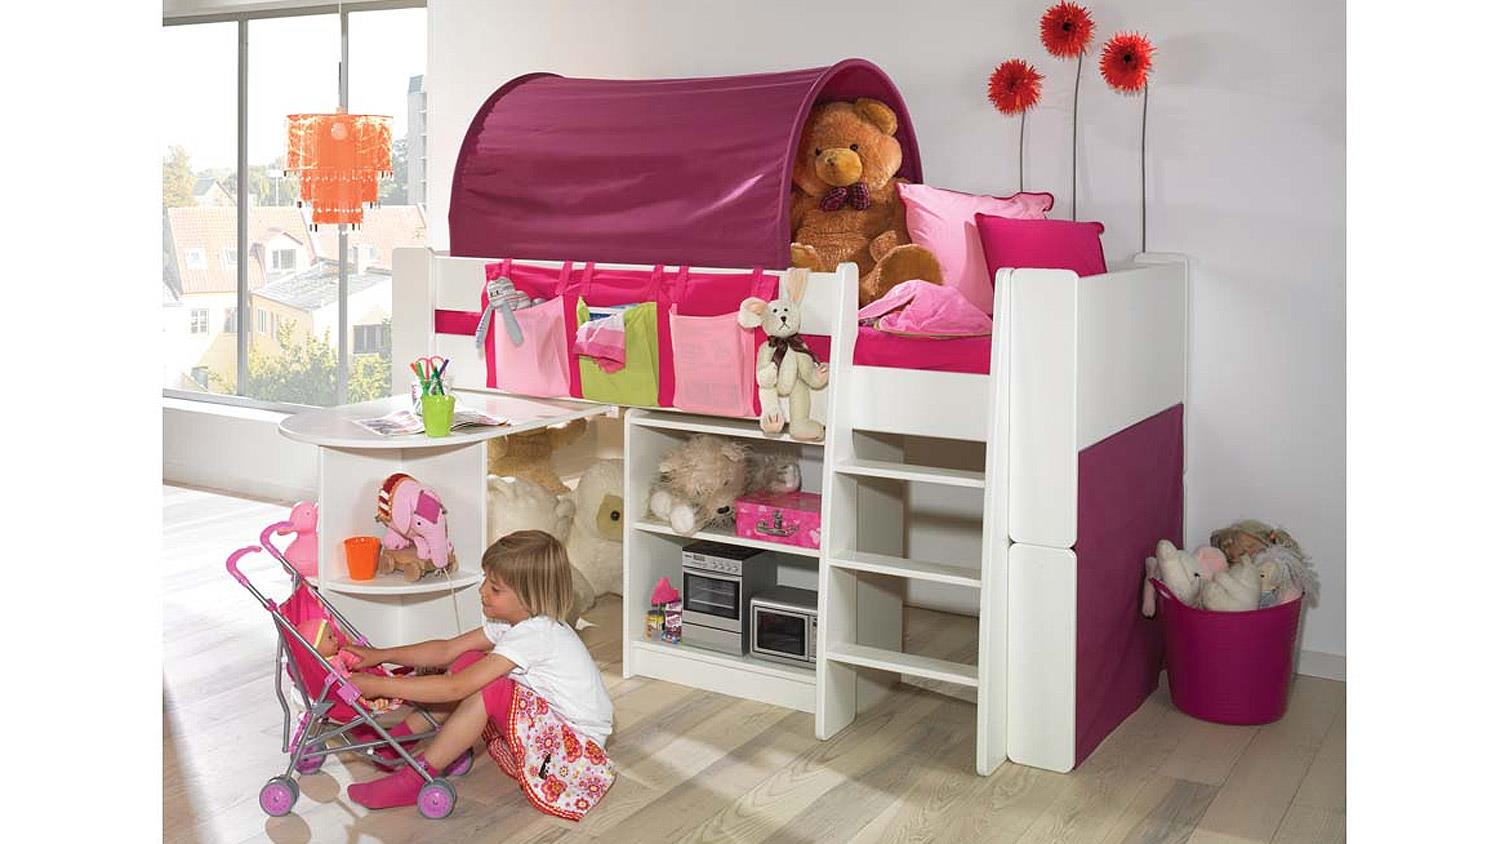 hochbett steens for kids kombi wei mdf lila pink 90x200 cm. Black Bedroom Furniture Sets. Home Design Ideas